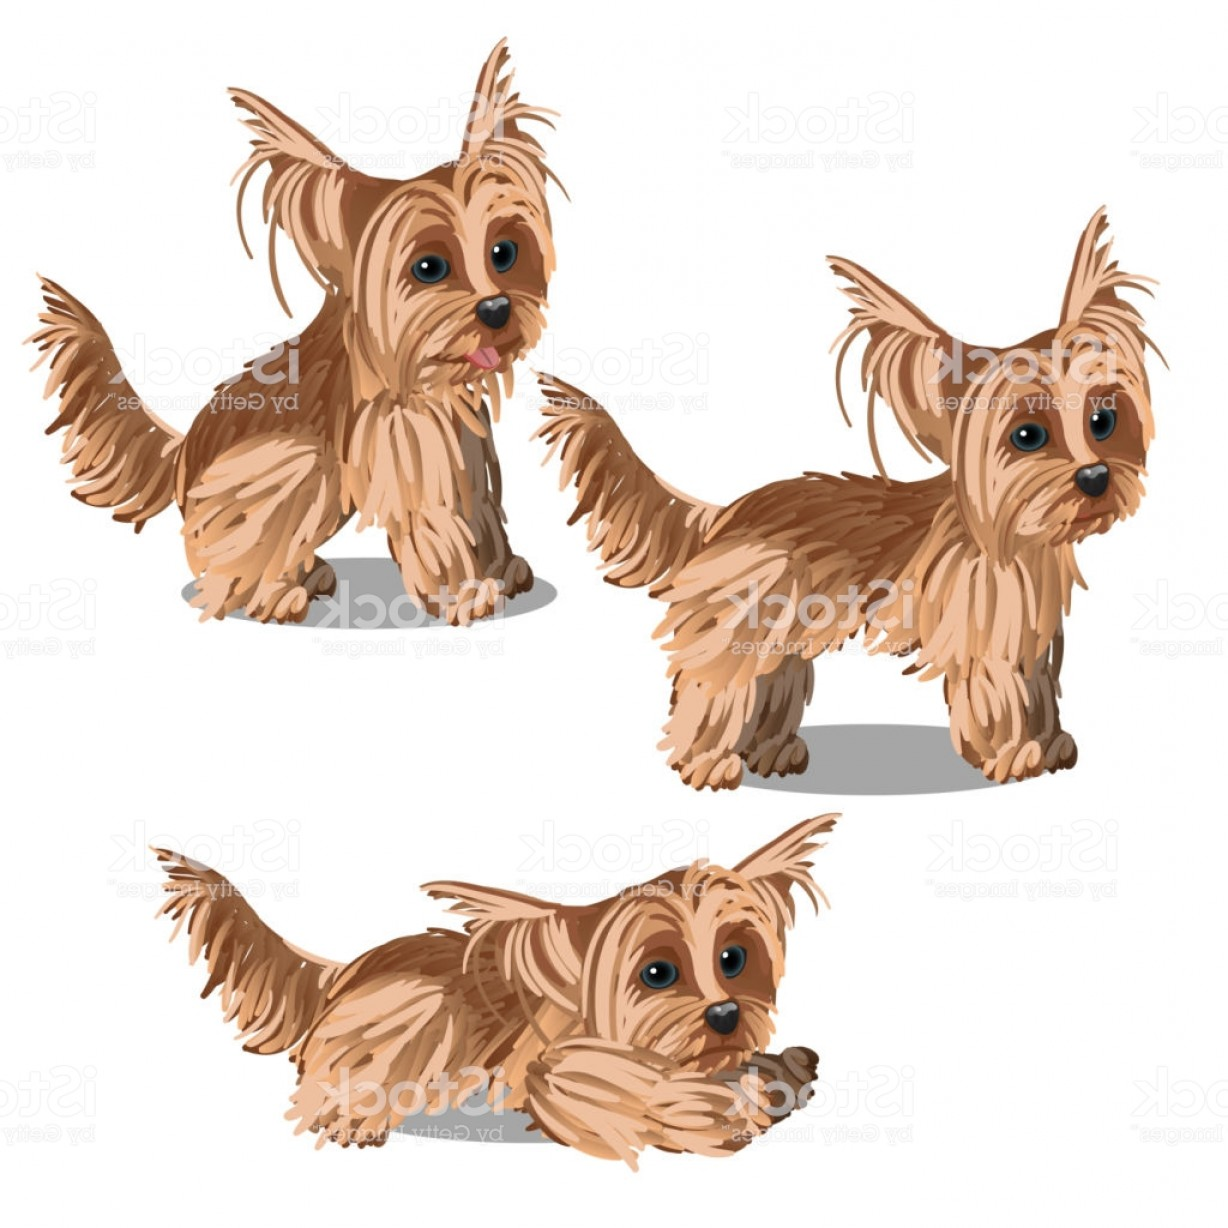 Cute Yorkie Dog Vector: Set Of Cartoon Animated Yorkshire Terrier Puppy Isolated On White Background Vector Gm